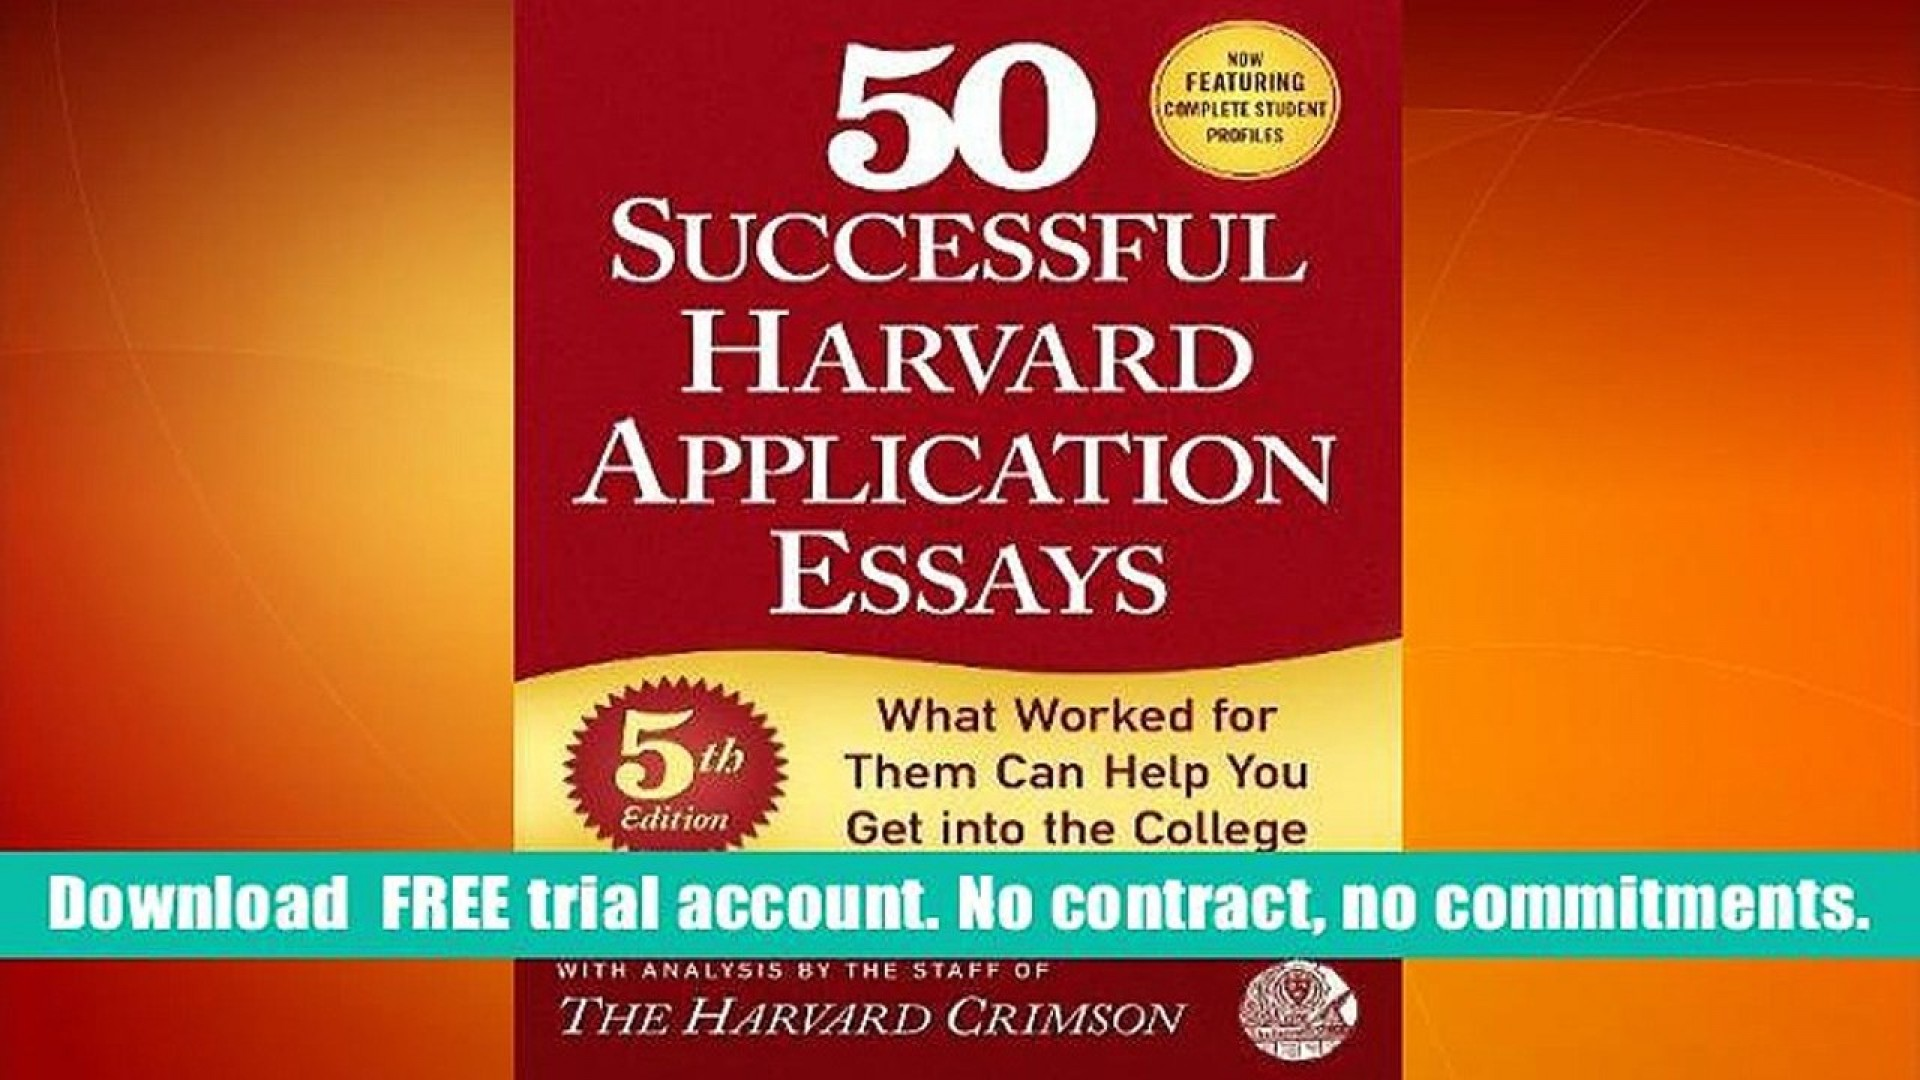 017 Essays 4th Edition Essay Example 1280x720 Phenomenal 50 Successful Harvard Application Pdf A Portable Anthology Answers Free 1920